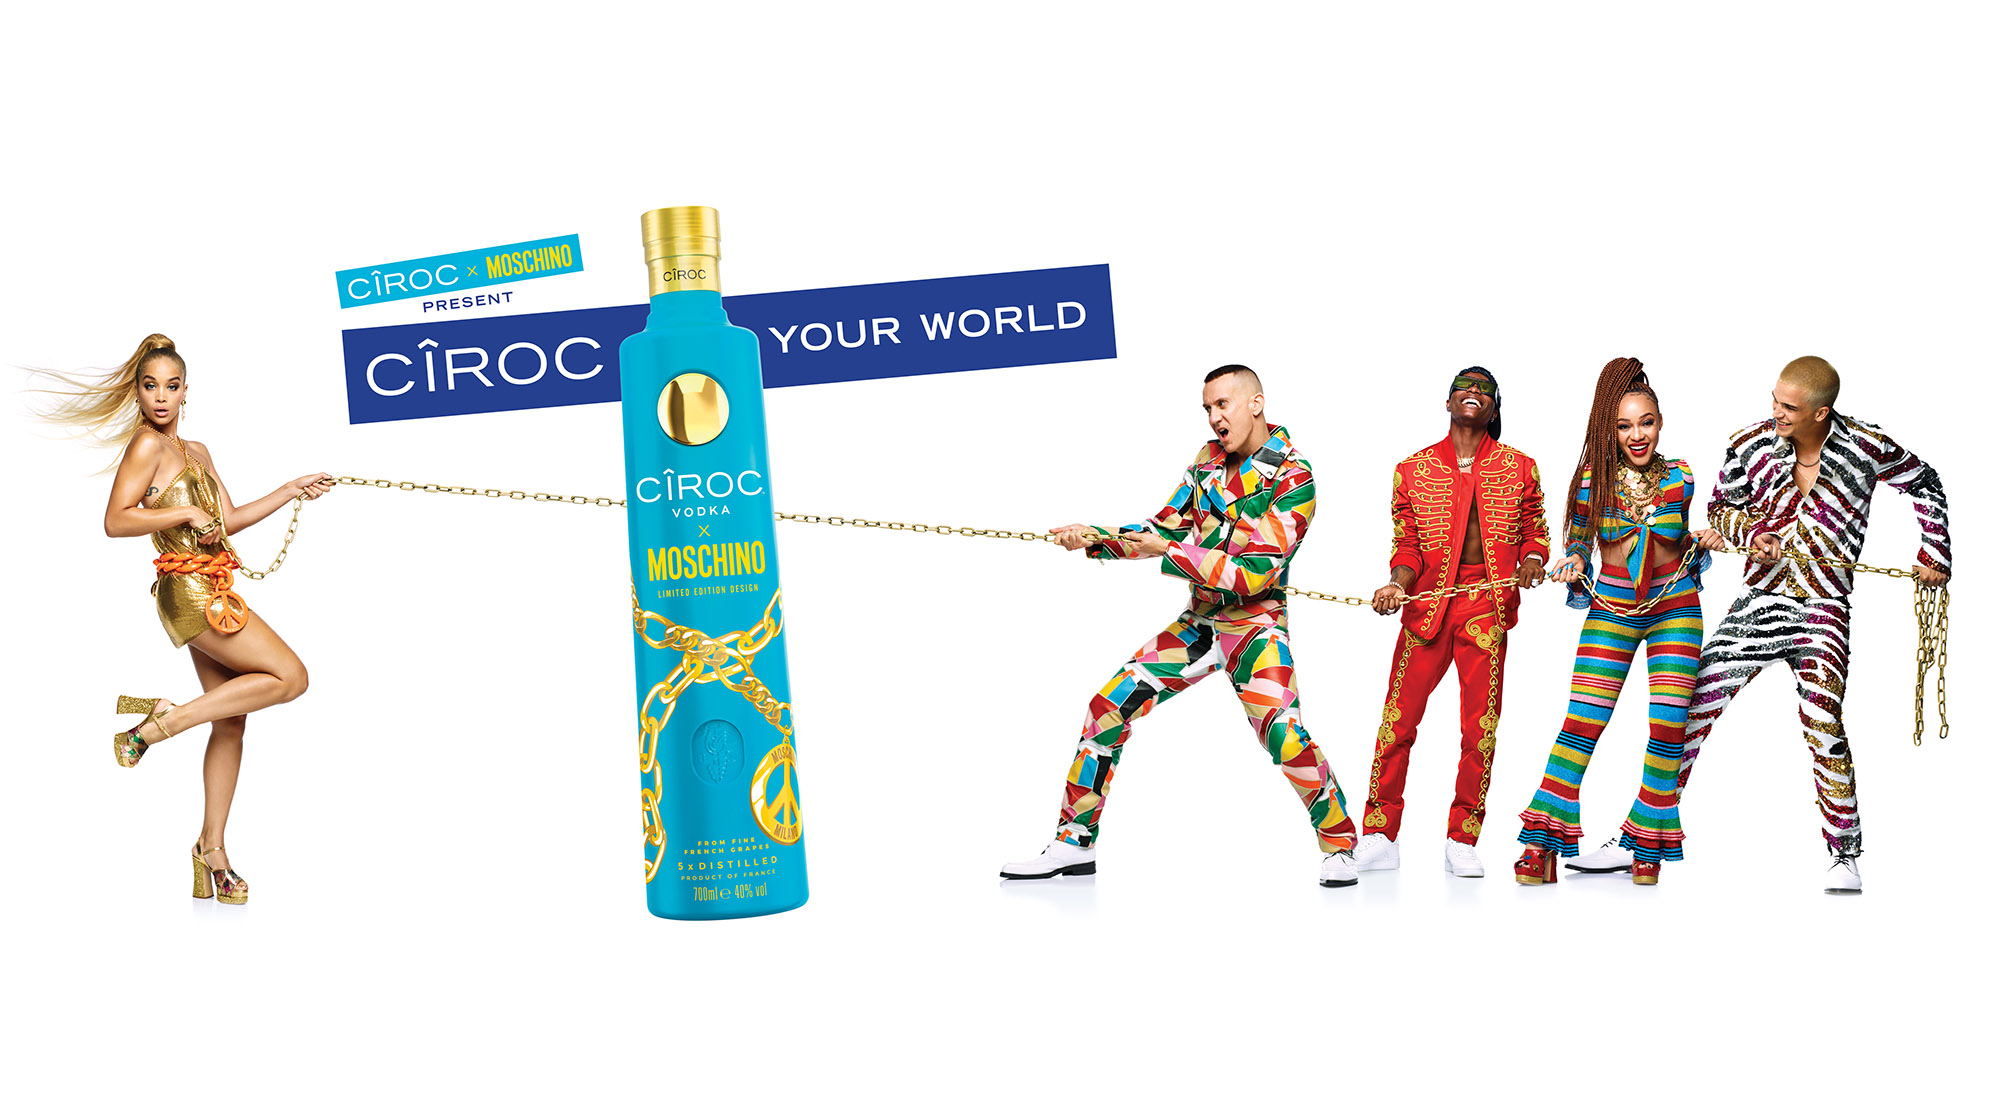 Ciroc x Moschino Key Visual.jpg